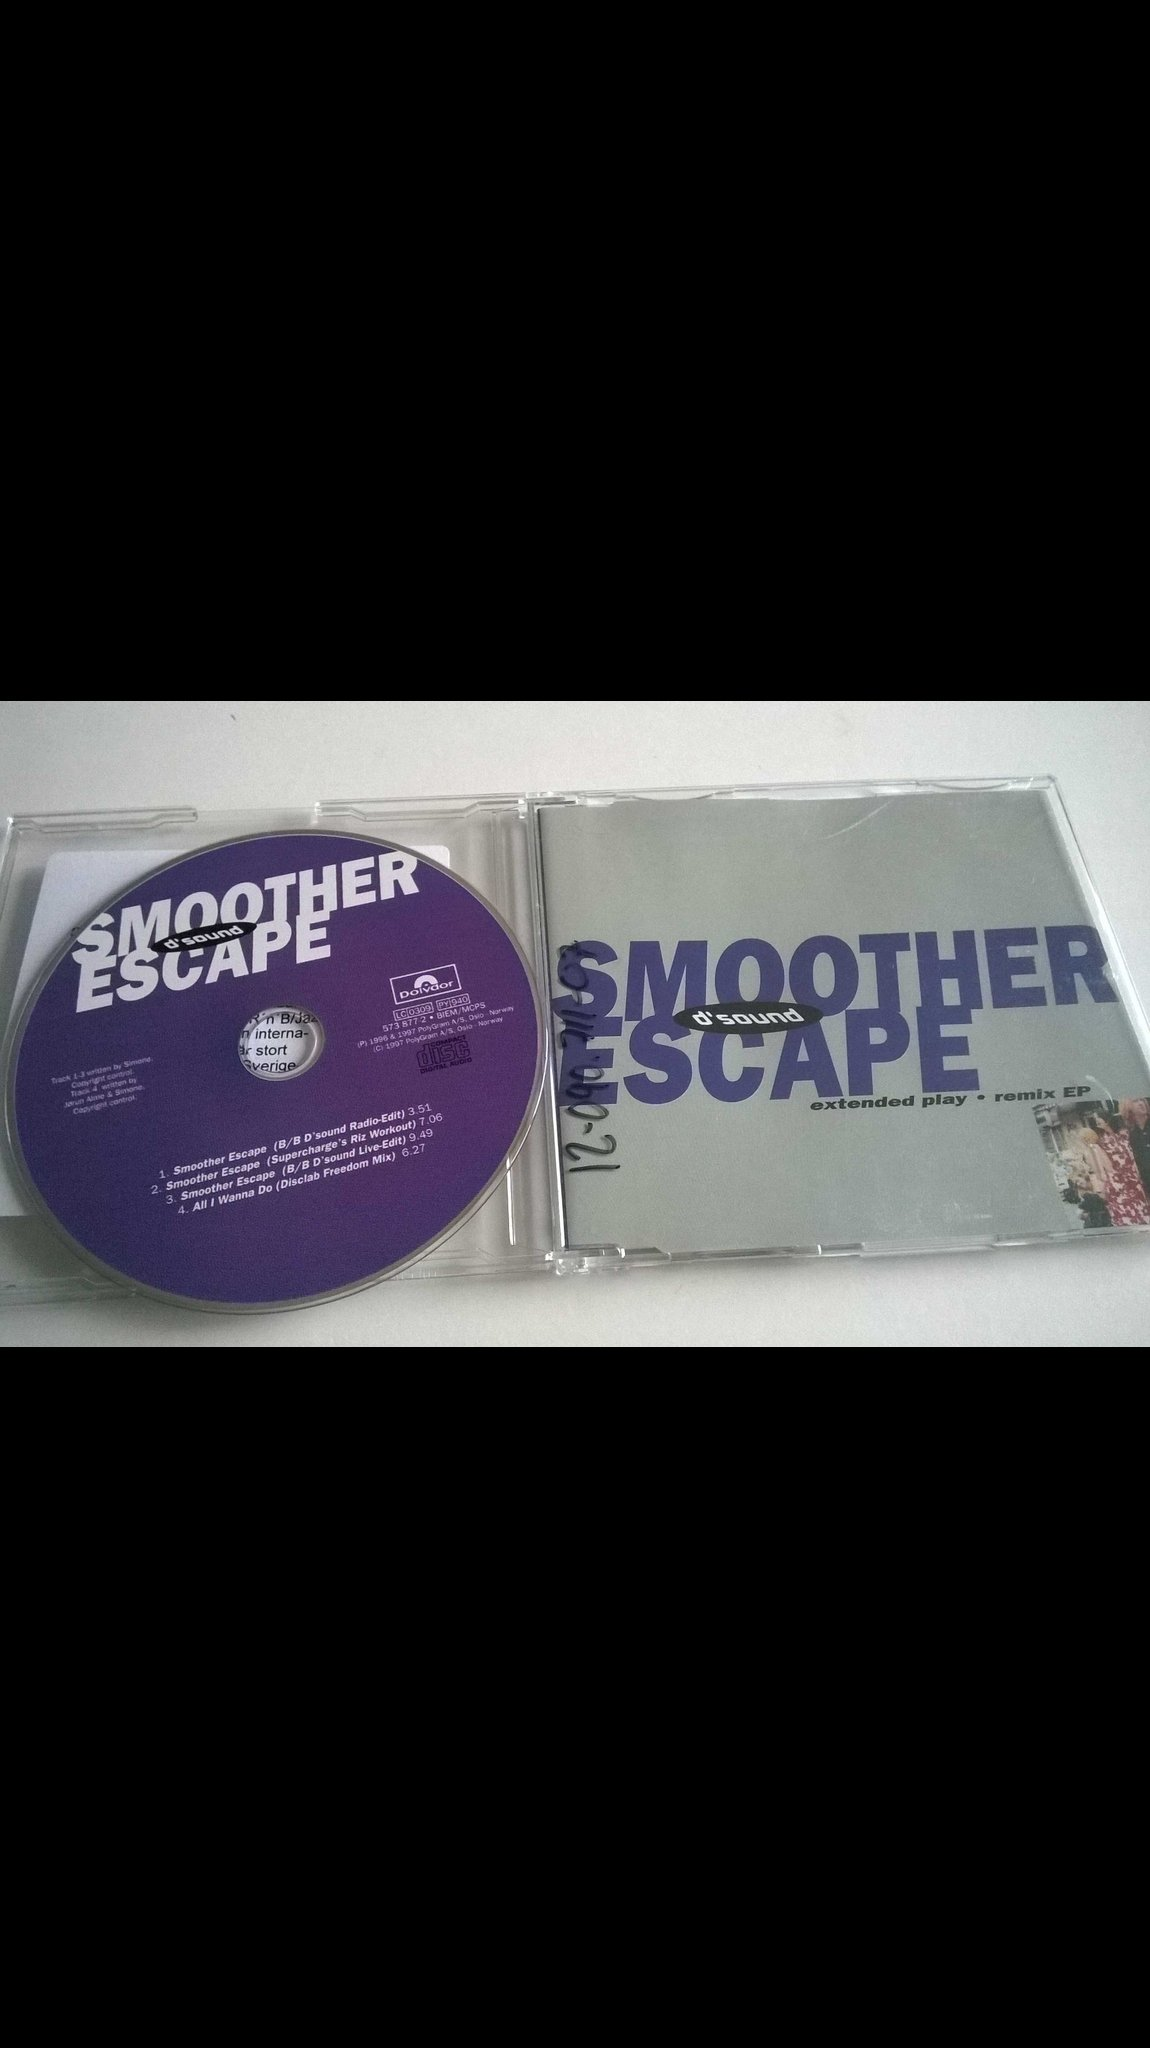 D'Sound - Smoother Escape (Extended Play - Remix EP) CD